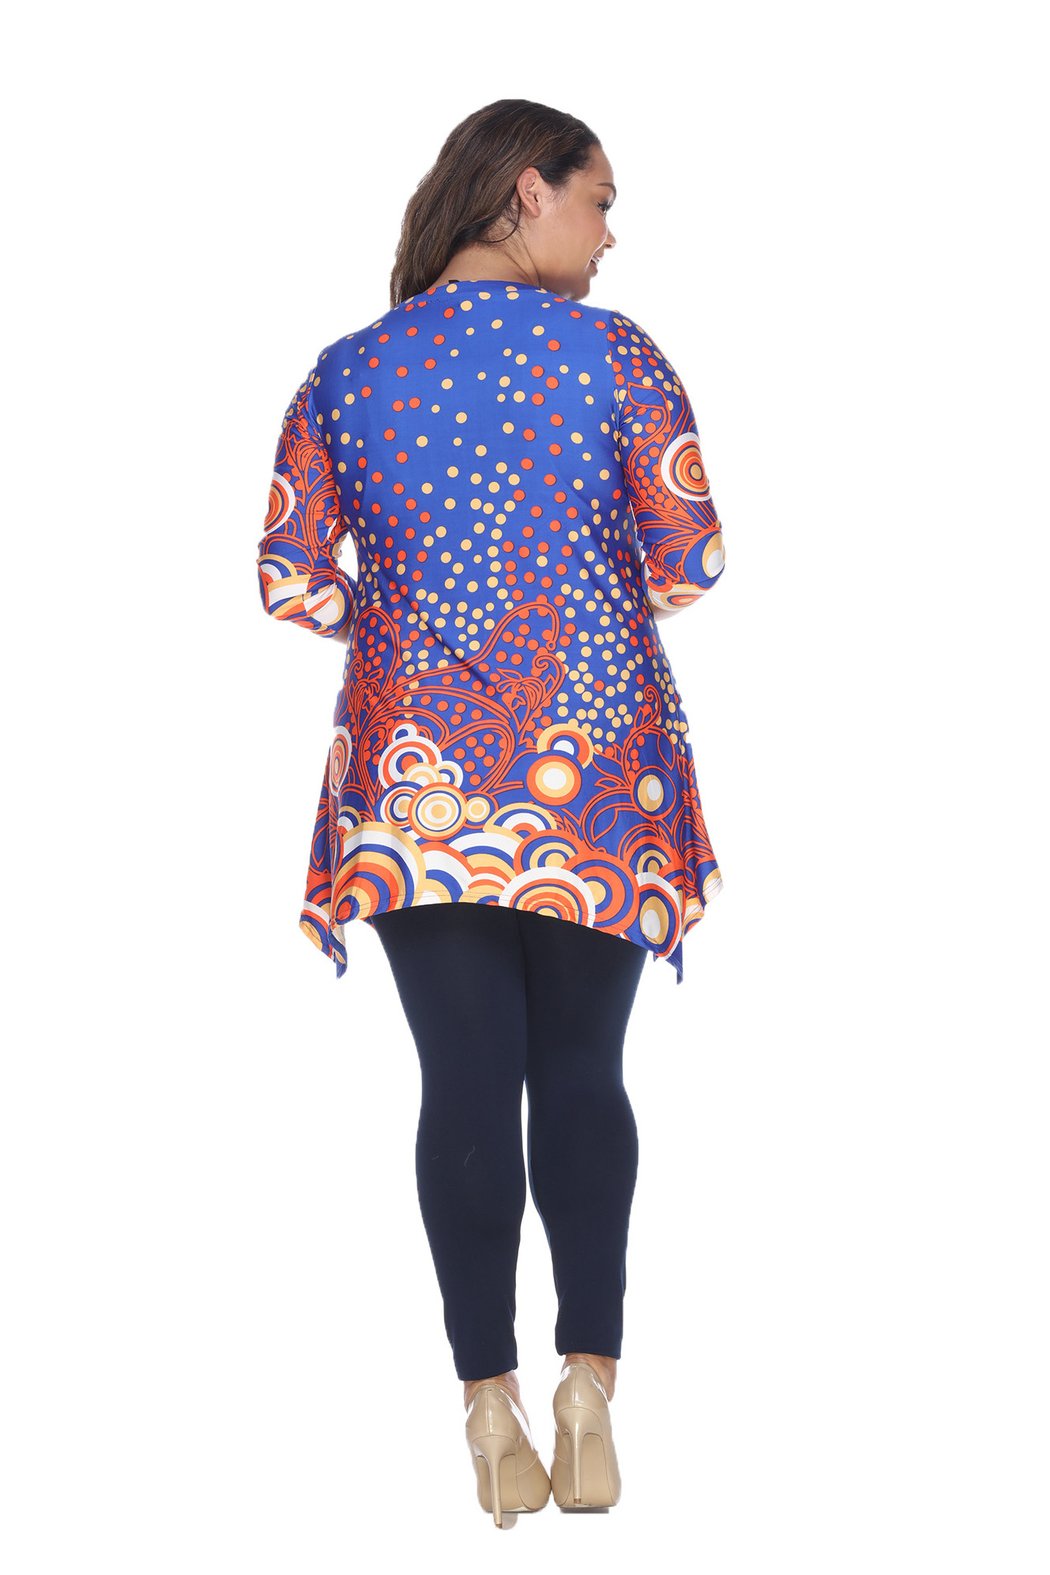 WhiteMark White Mark's Dotty Pleated Front Tunic Top - Side Cropped Image